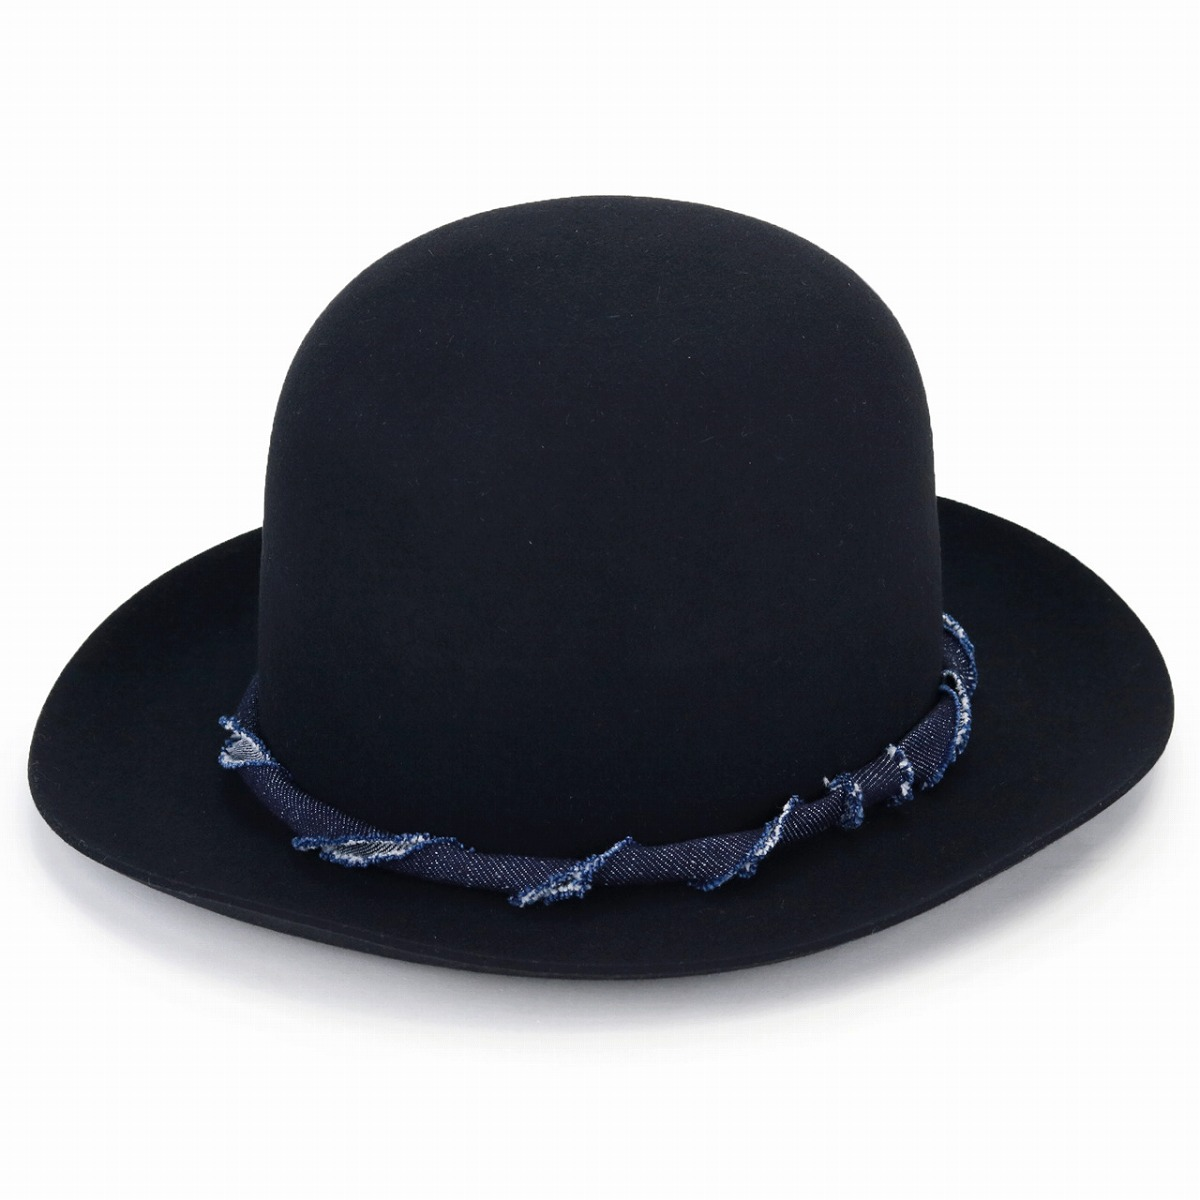 ... the factory made trilby hat gentleman denim hat Lady s soft felt hat  bowler hat mountain hat a8def616584a